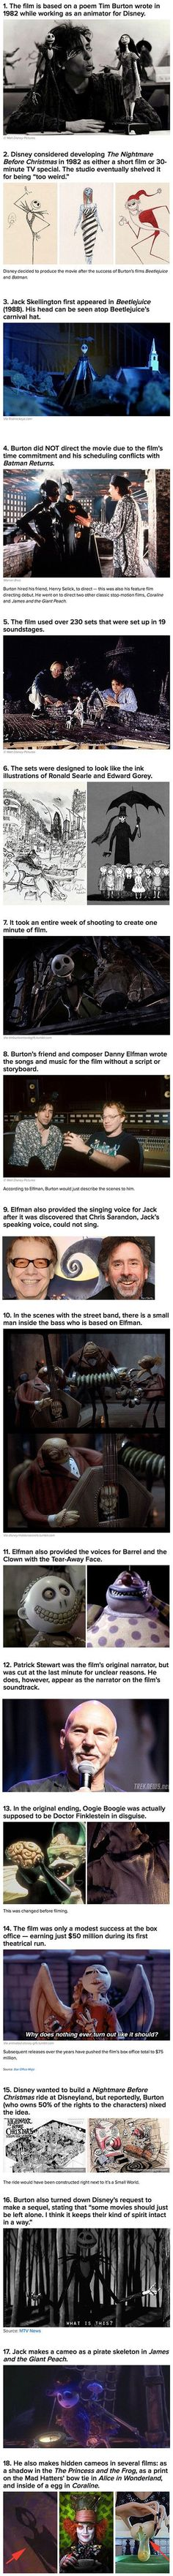 Interesting facts about Tim Burton's THE NIGHTMARE BEFORE CHRISTMAS